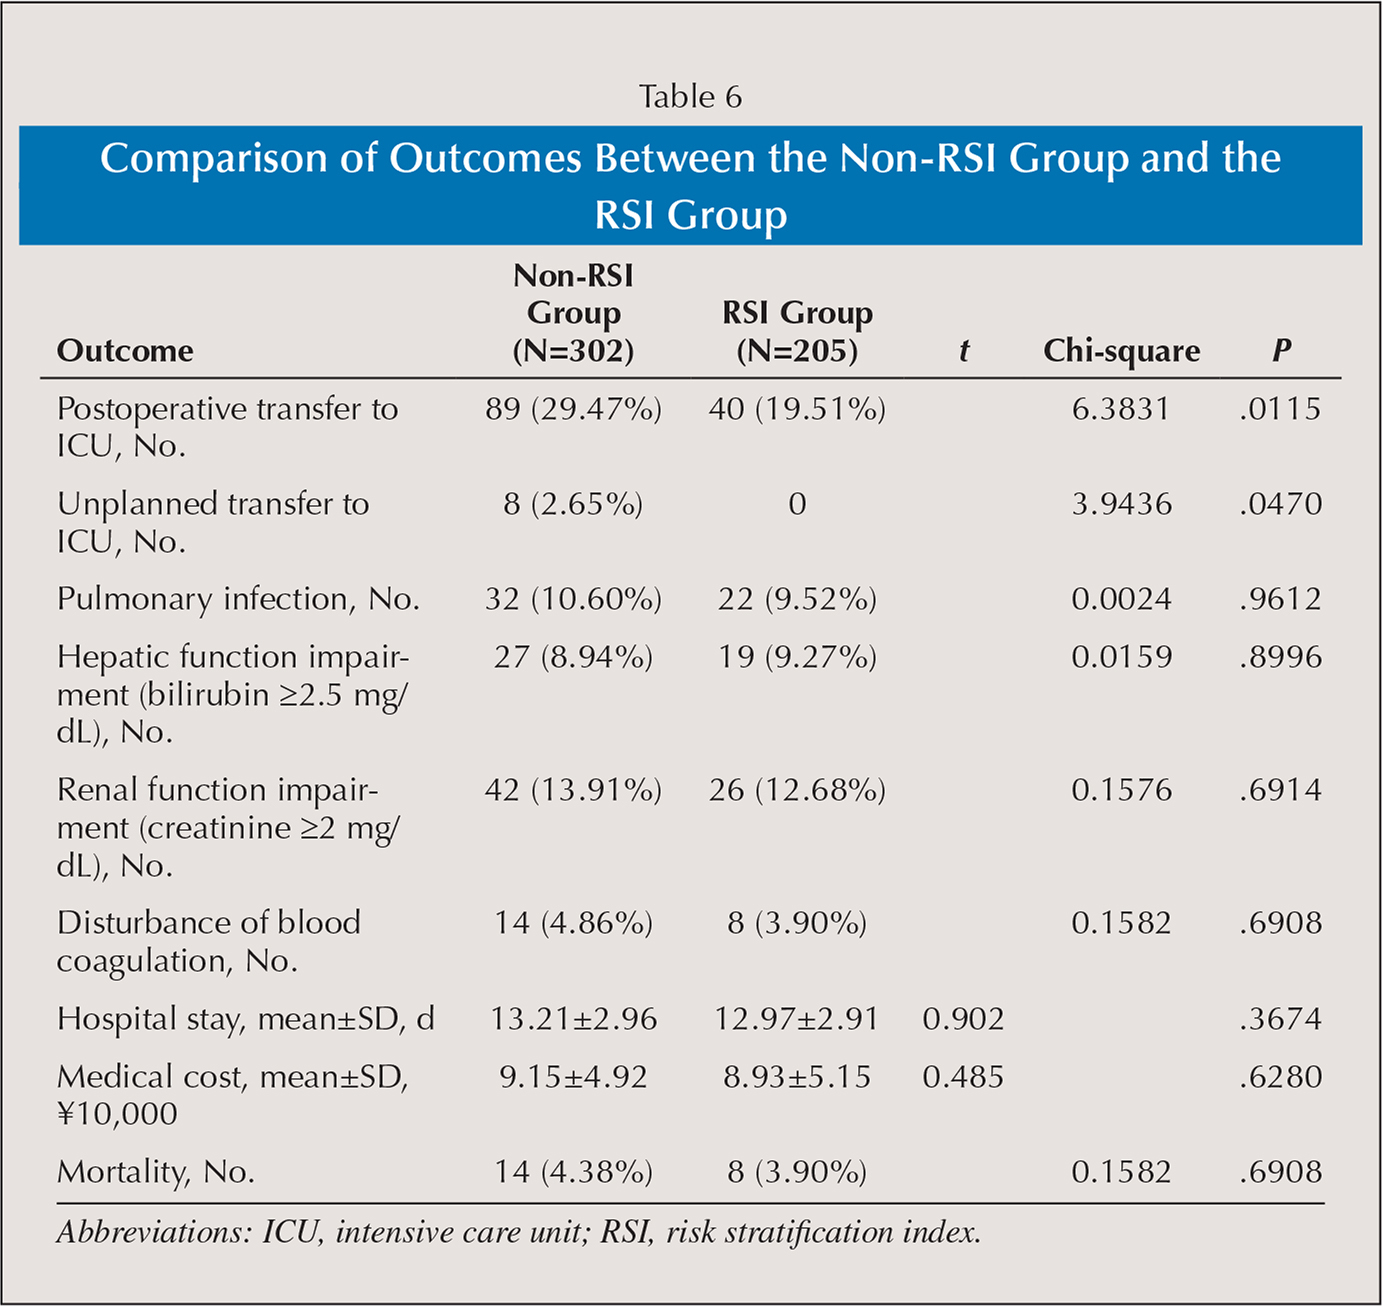 Comparison of Outcomes Between the Non-RSI Group and the RSI Group